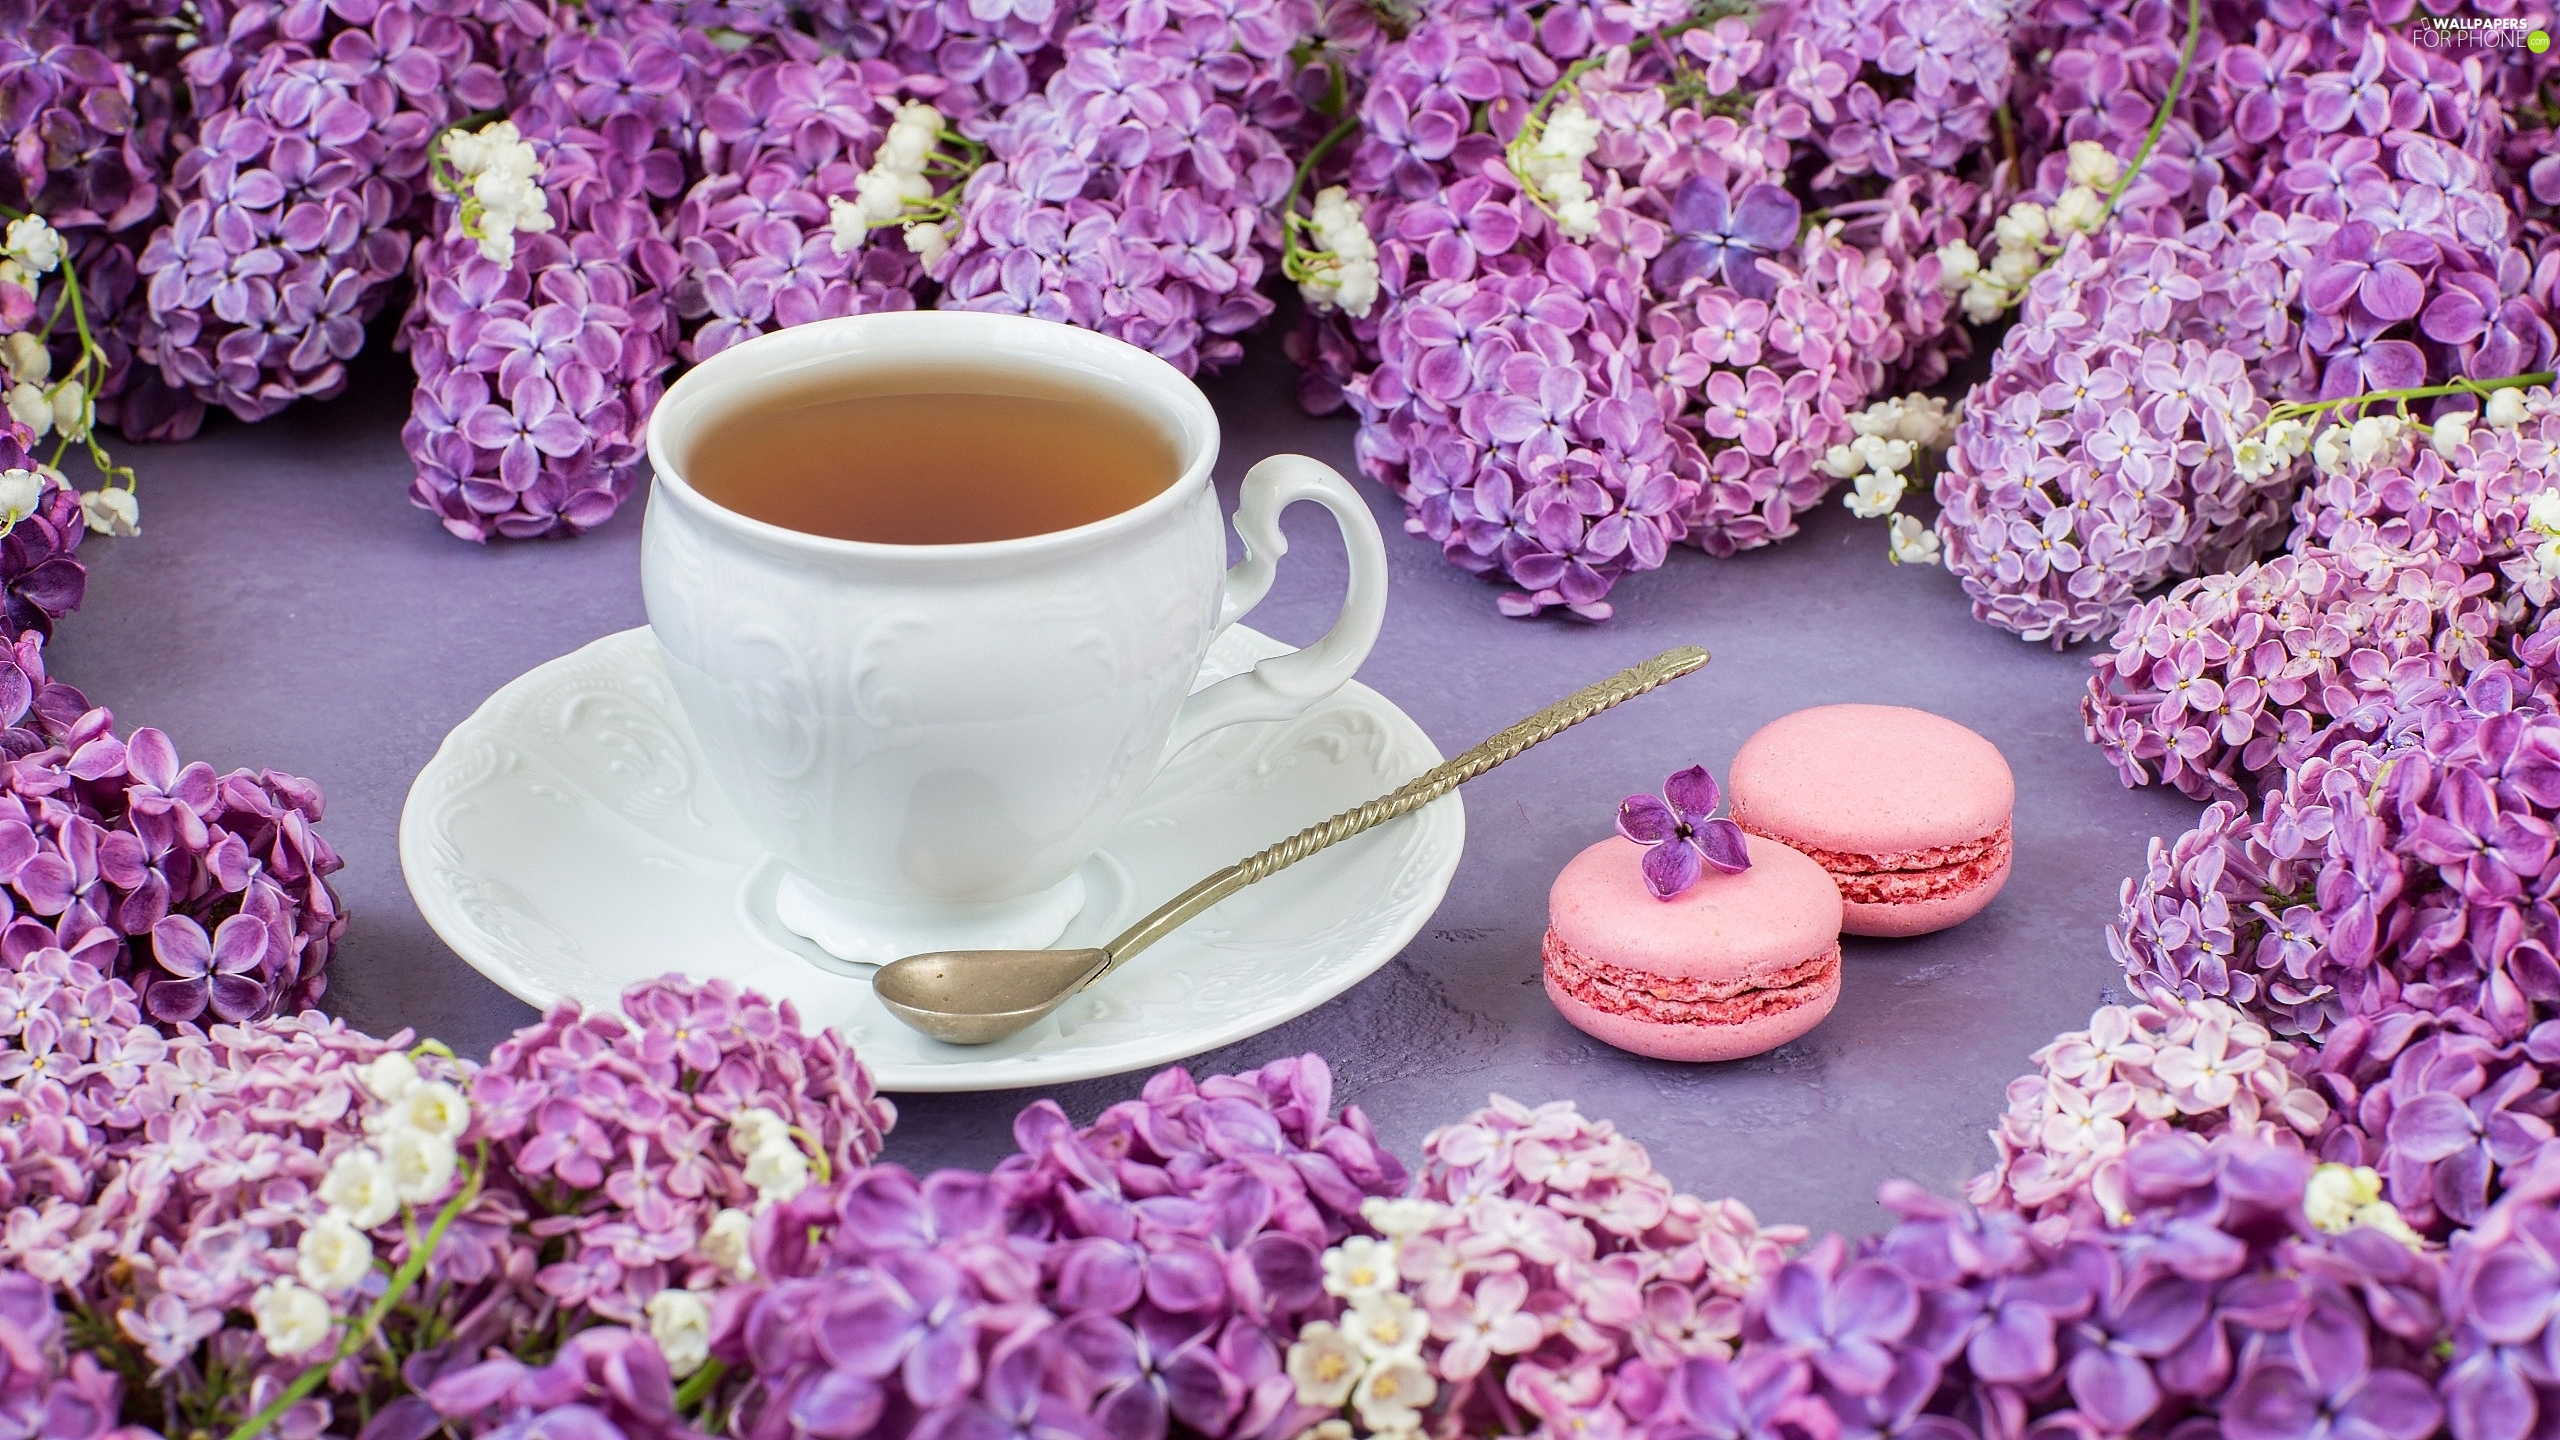 saucer, teaspoon, Twigs, Cookies, without, tea, cup, Macaroons